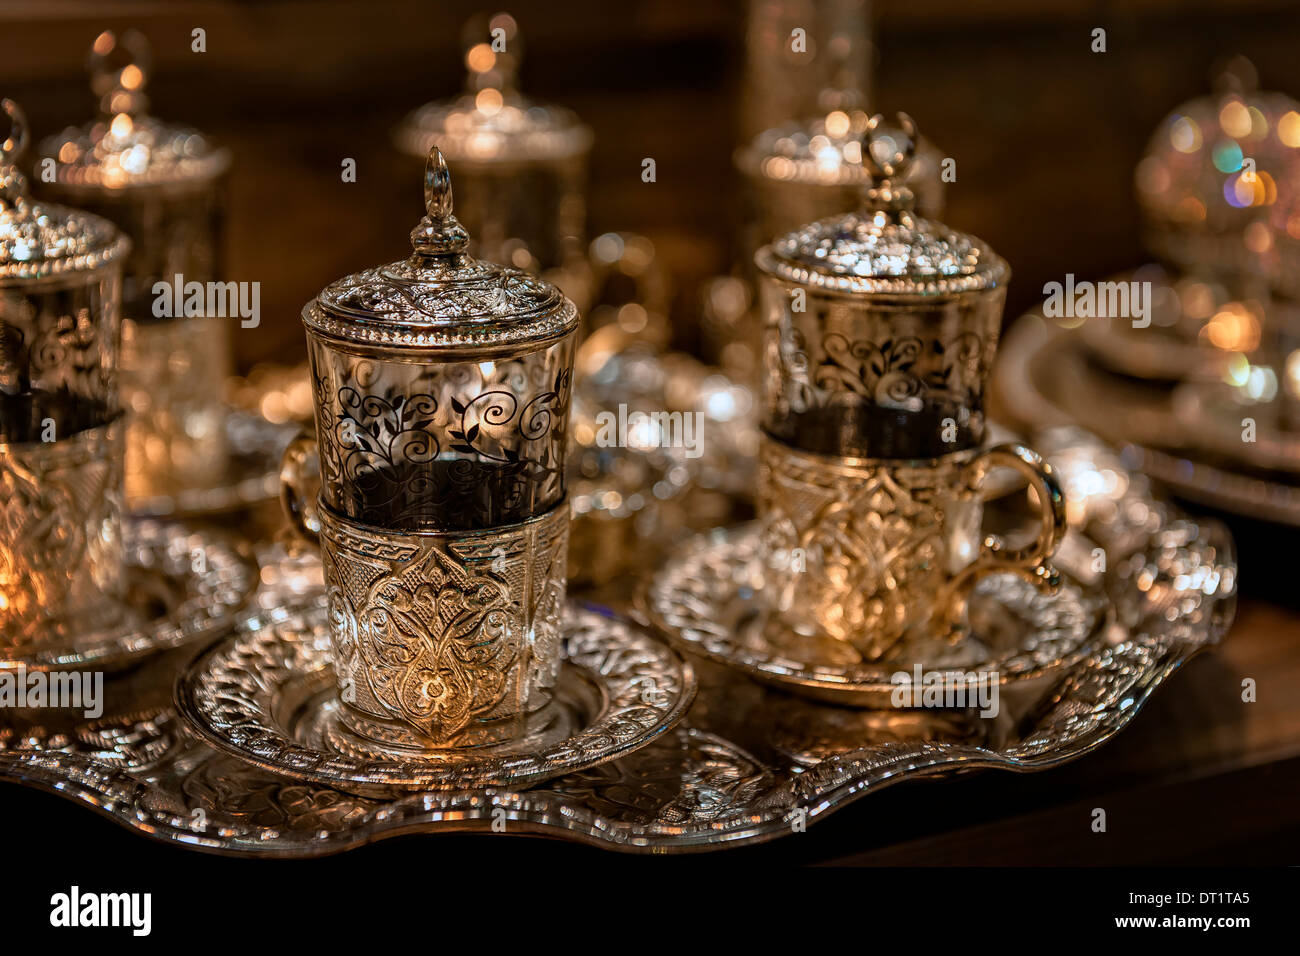 Close-up of decorative Turkish tea cups at the Grand Bazaar in Istanbul, Turkey. - Stock Image